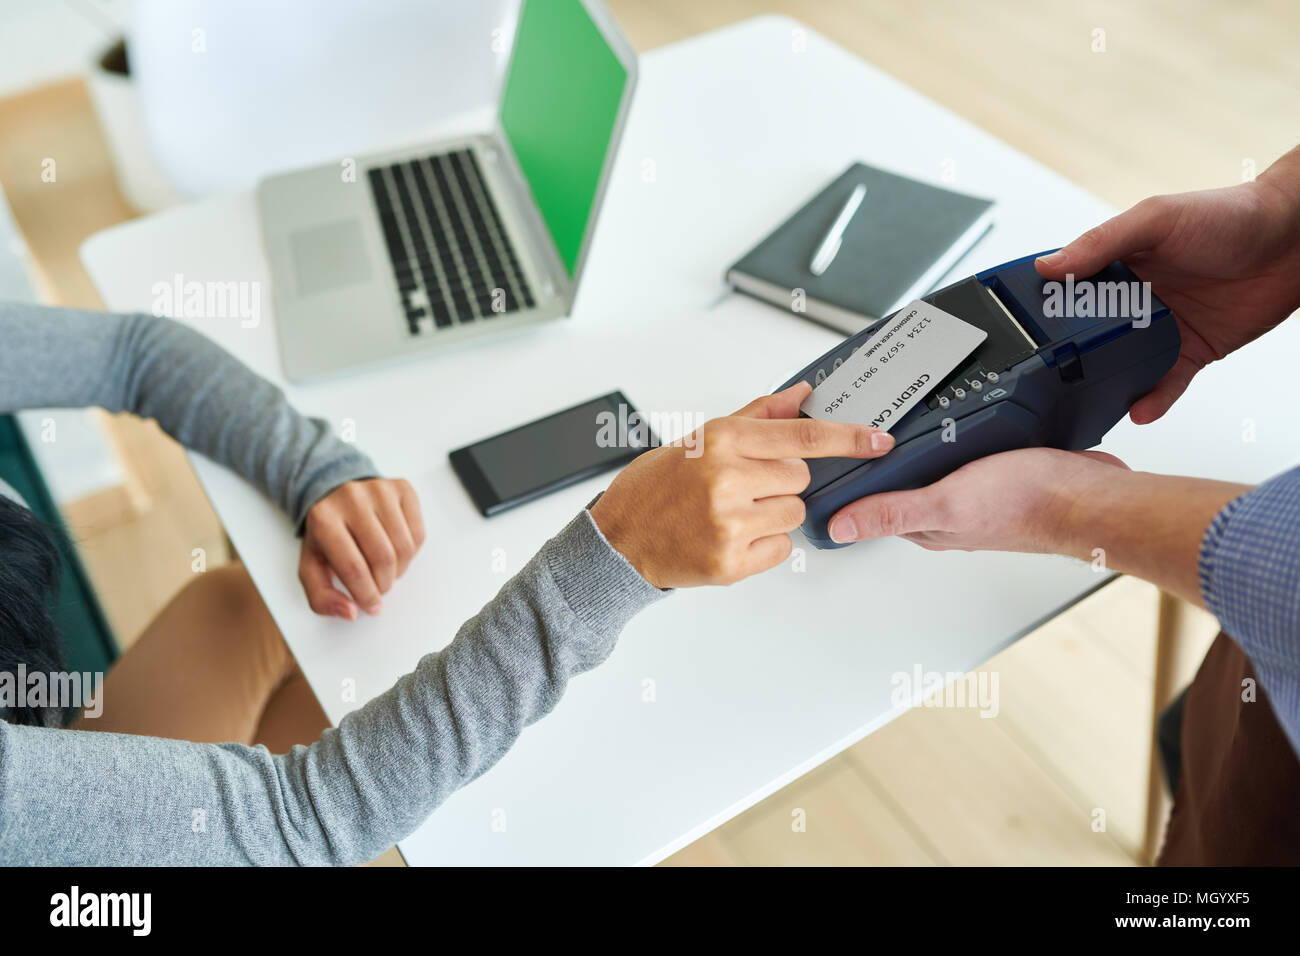 Woman Paying by NFC Card in Cafe - Stock Image